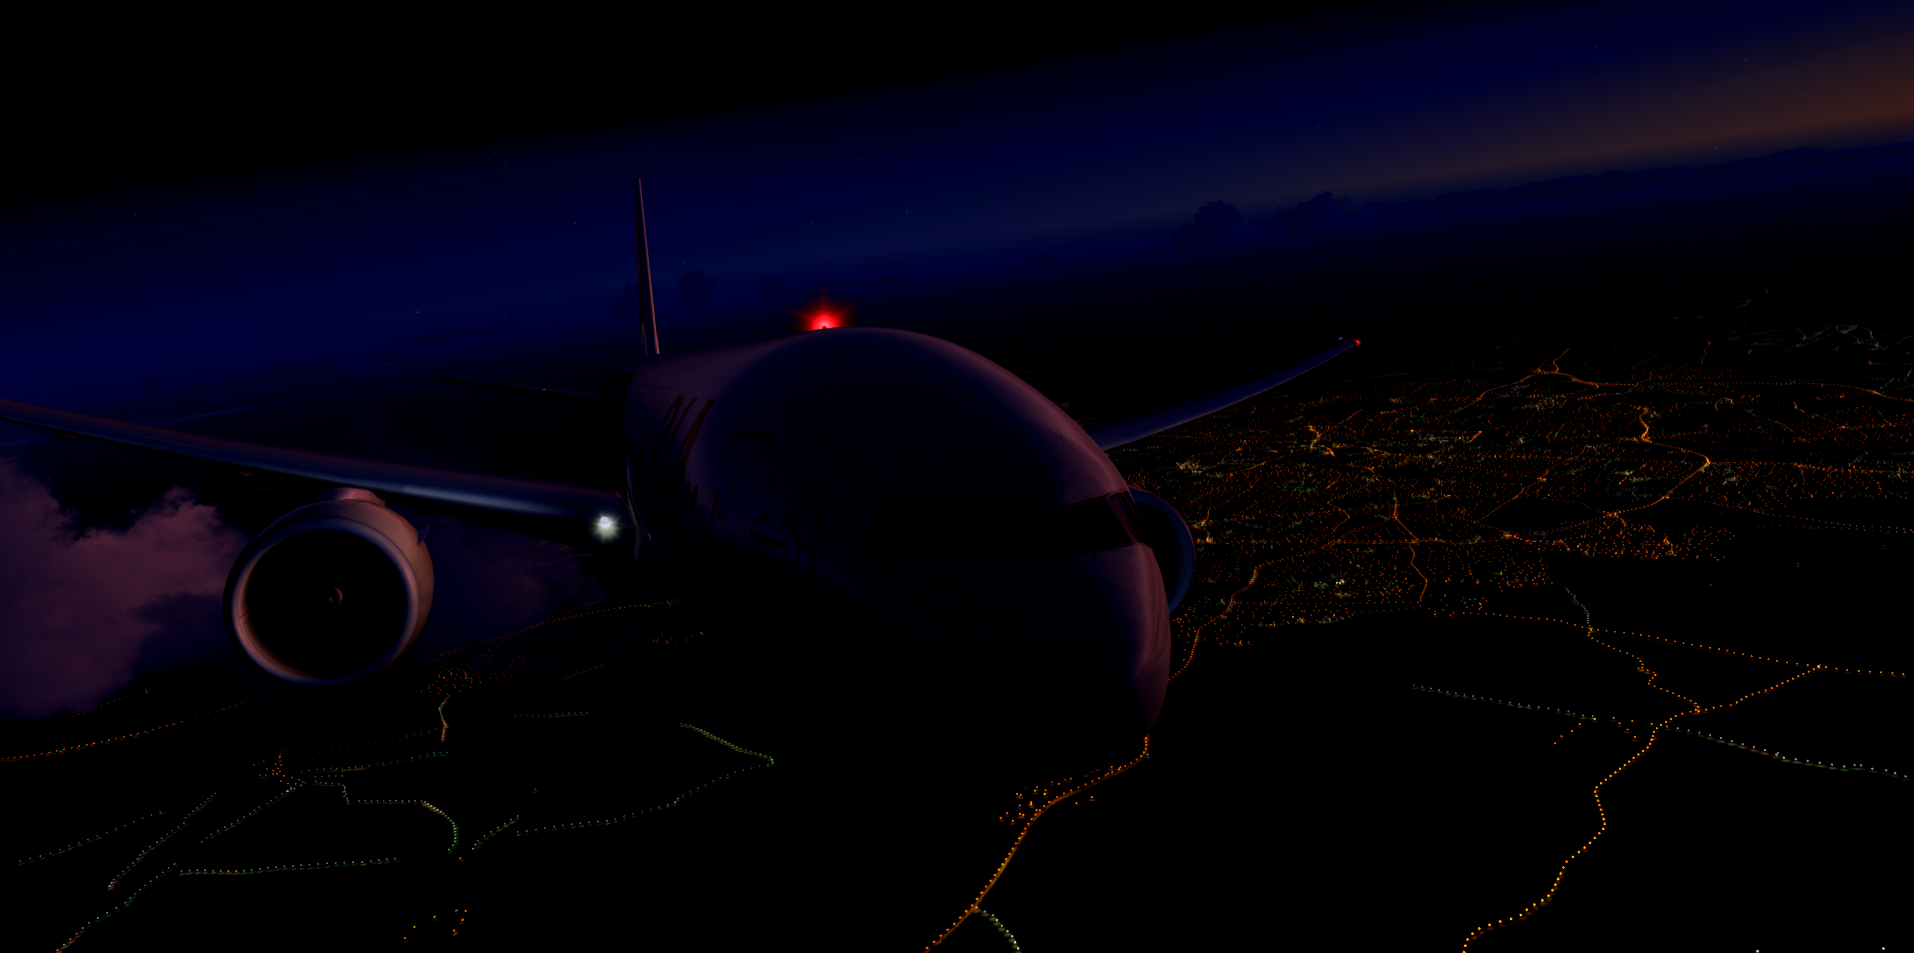 fsx%202014-05-15%2011-12-56-176.png